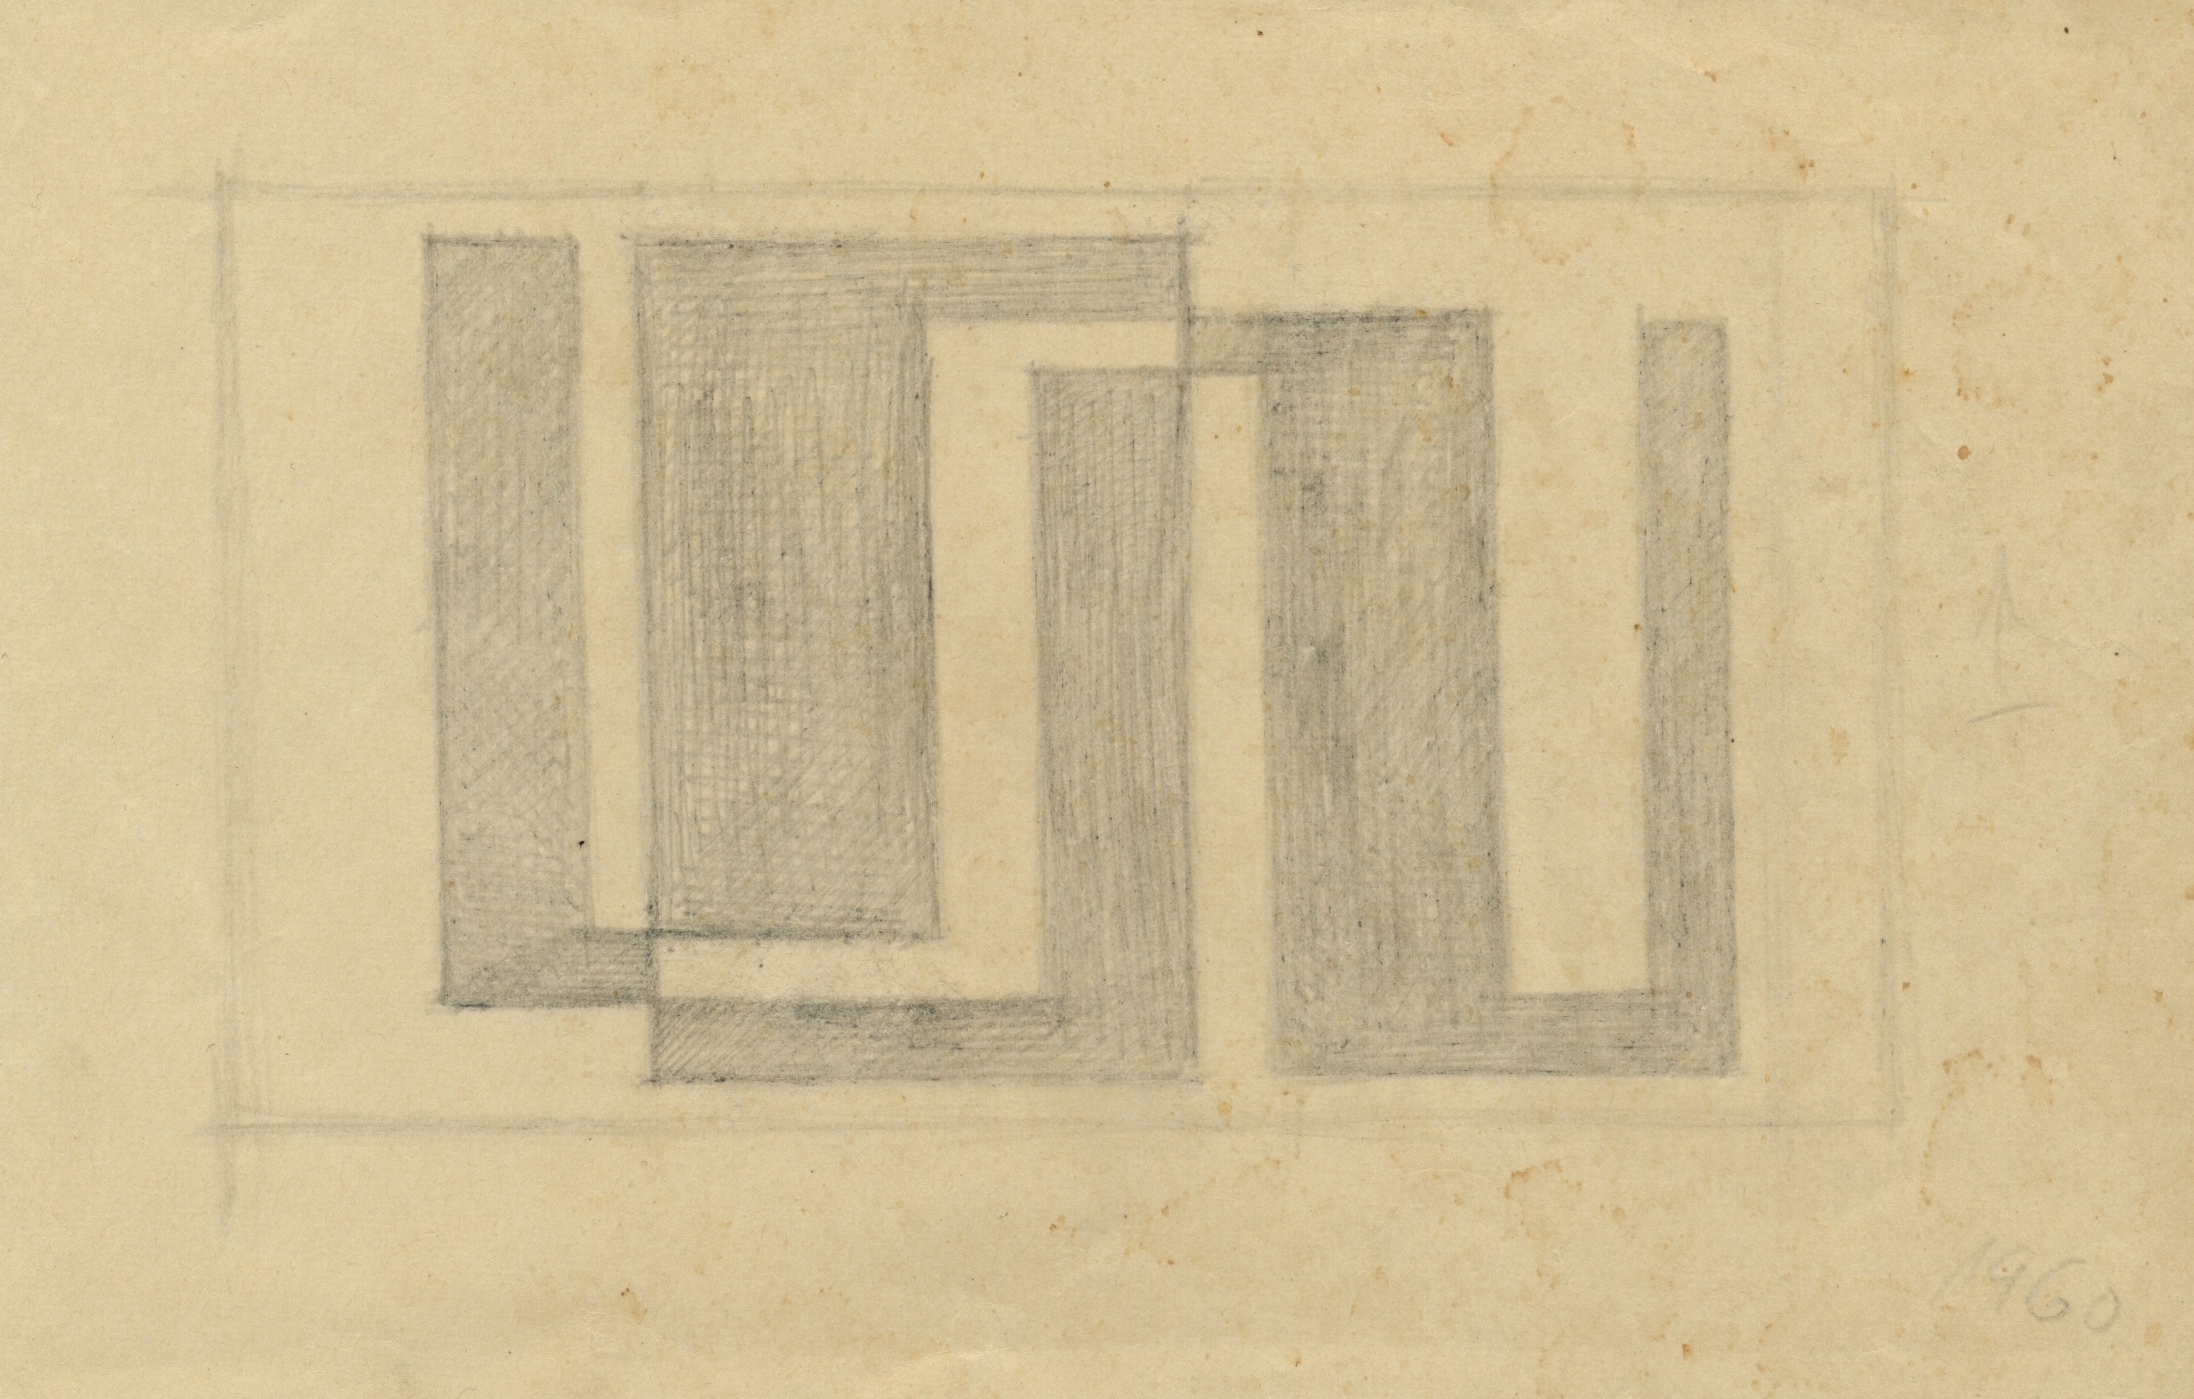 Untitled, pencil on paper, 12 x 19 cm, 1960